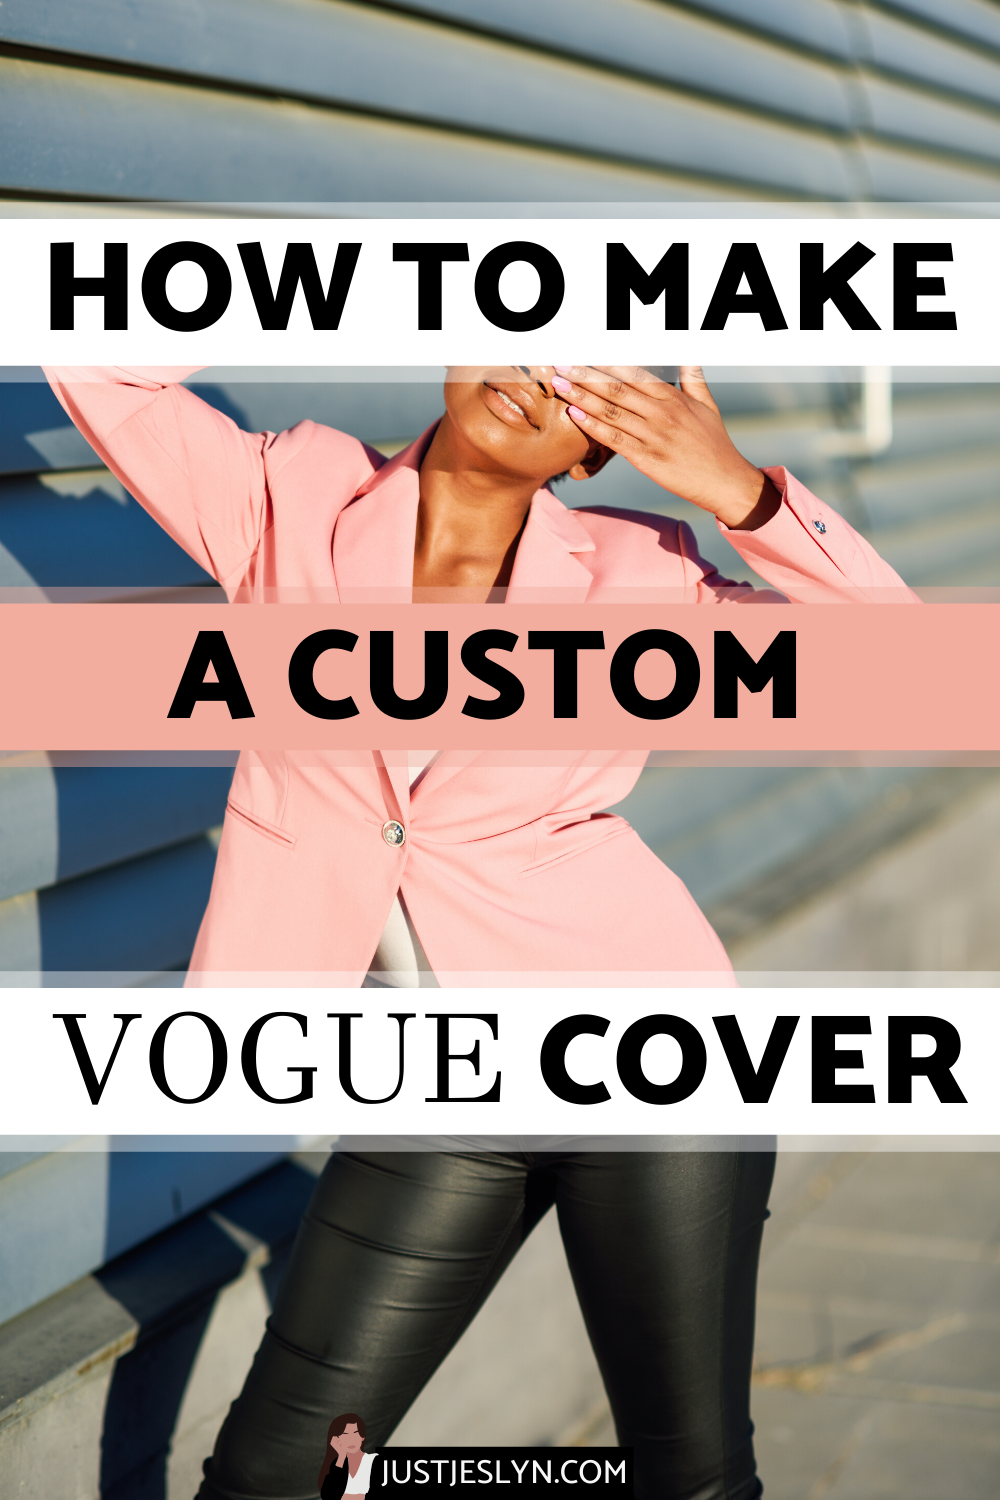 Vogue Challenge How To Make A Custom Vogue Cover Just Jes Lyn Vogue Covers Lifestyle Photography Fashion Glamour Photography